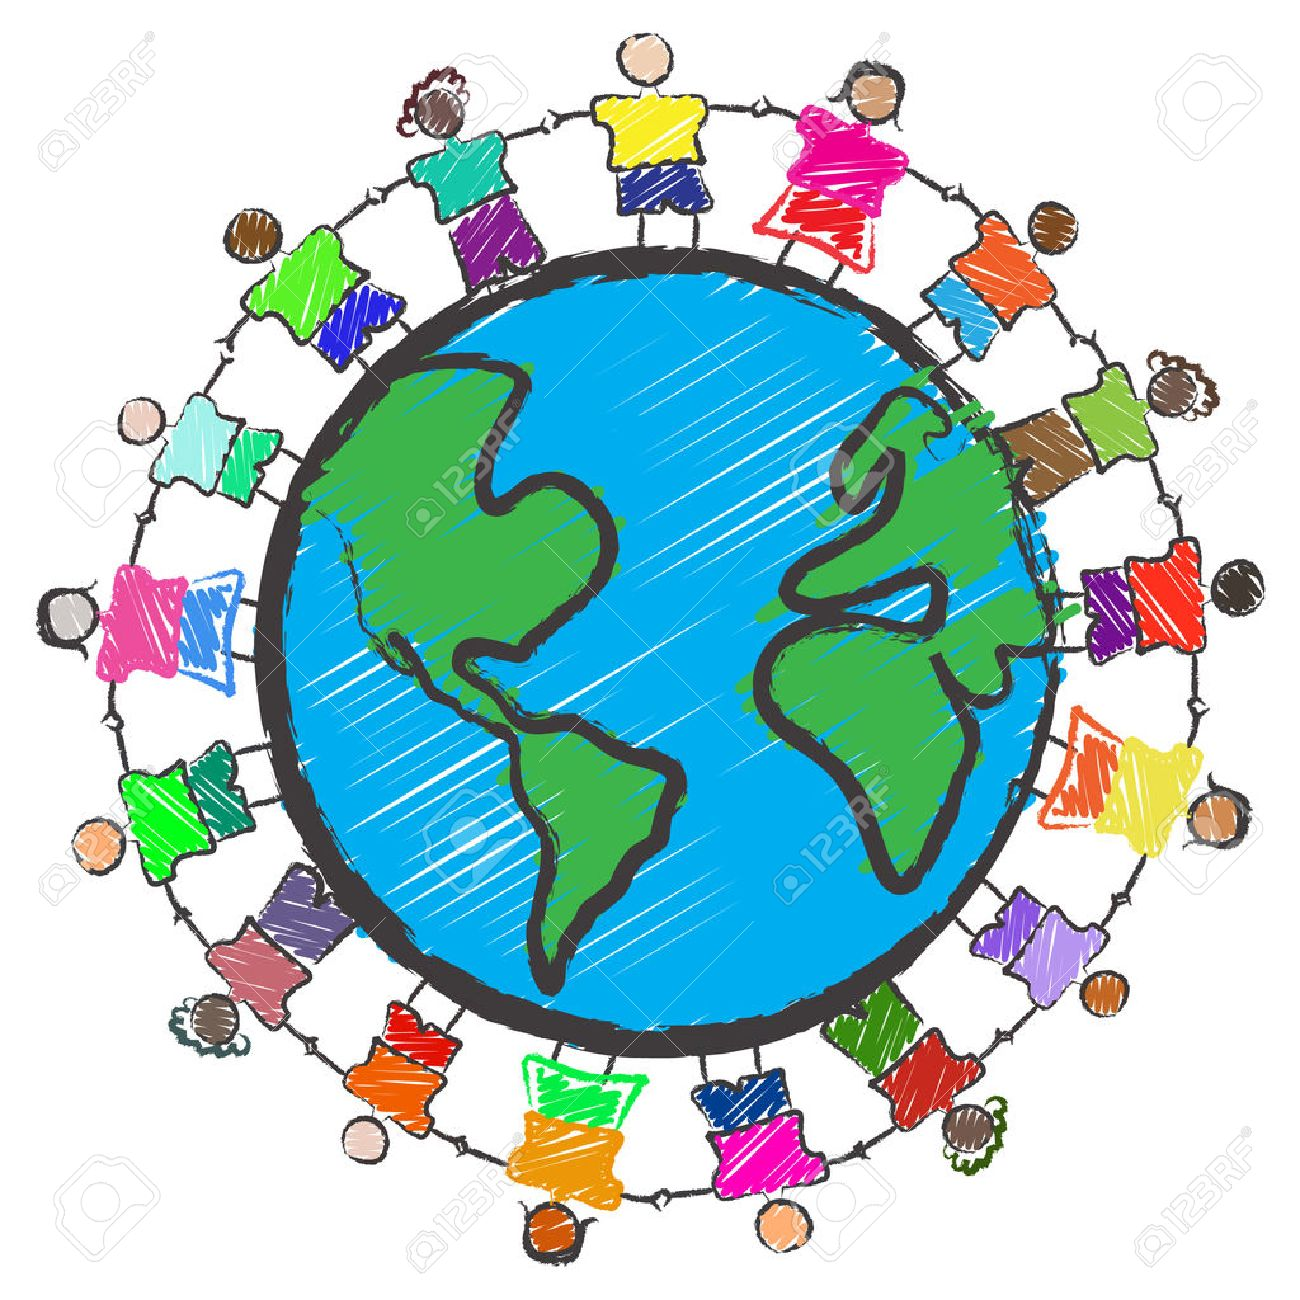 Vector - Illustration of a group of kids with different races holding hands around the globe Stock Vector - 5336284